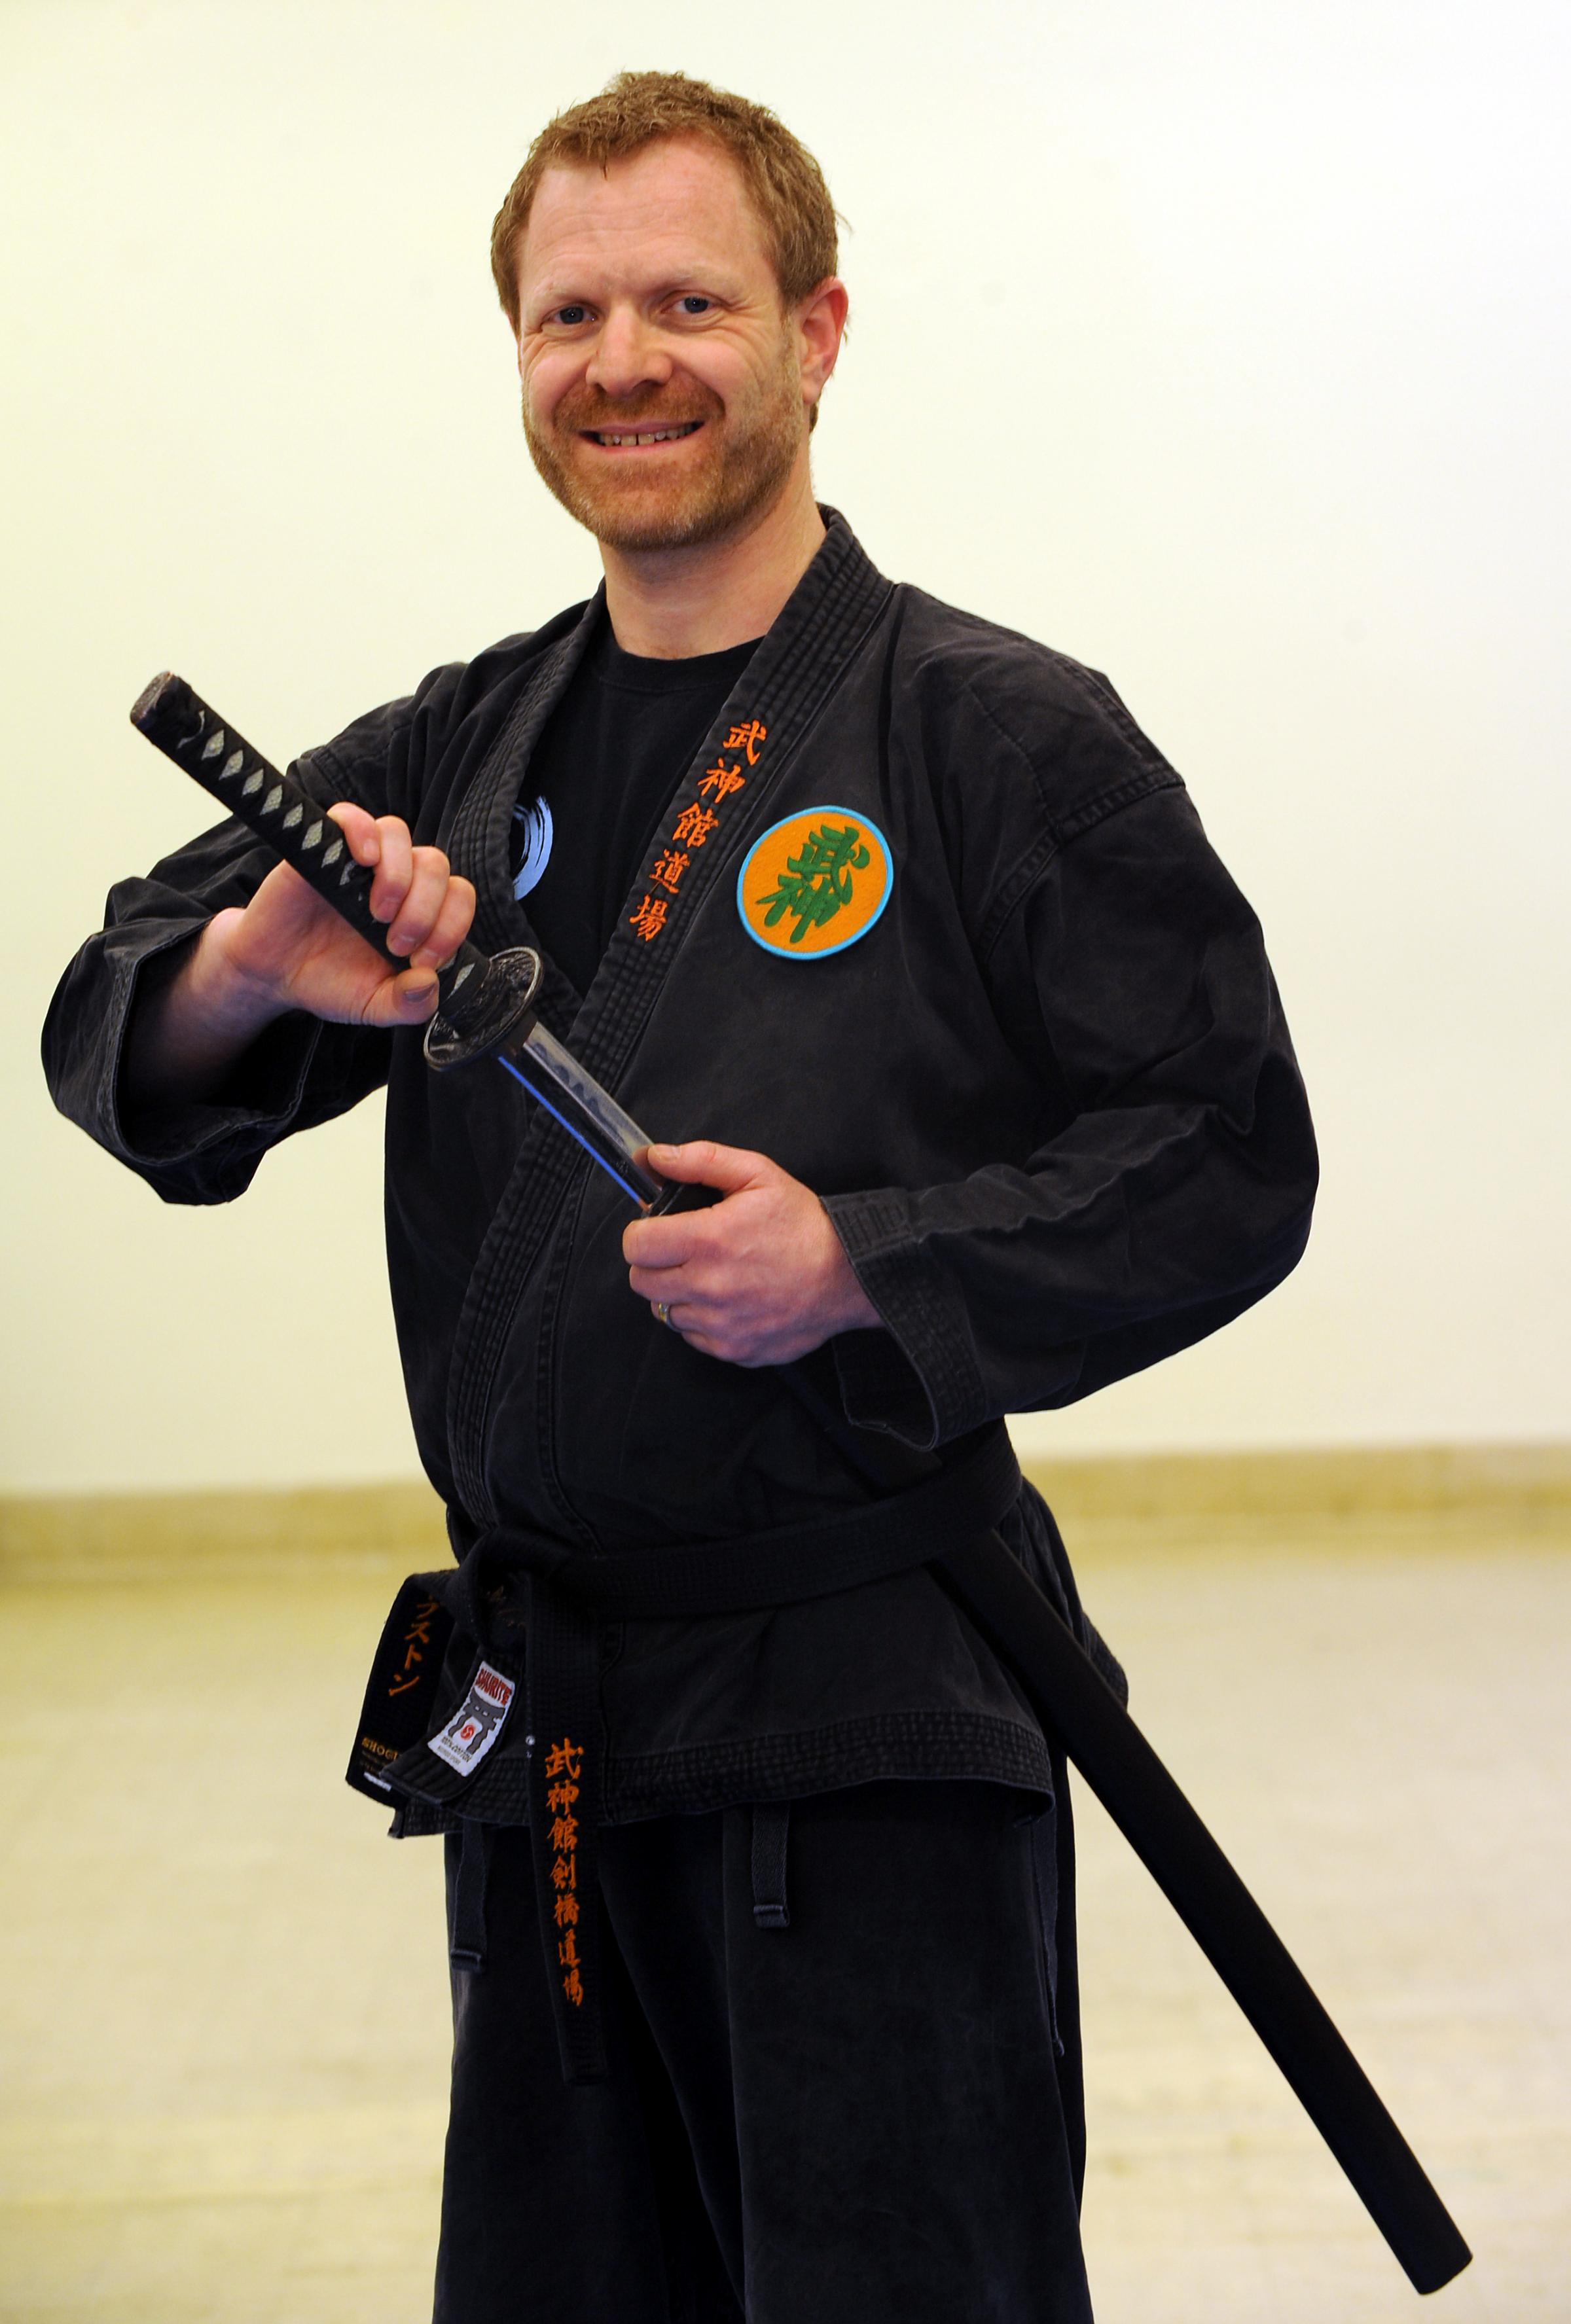 Brighton martial arts expert Jake Sharpstone achieves his Ninja dream